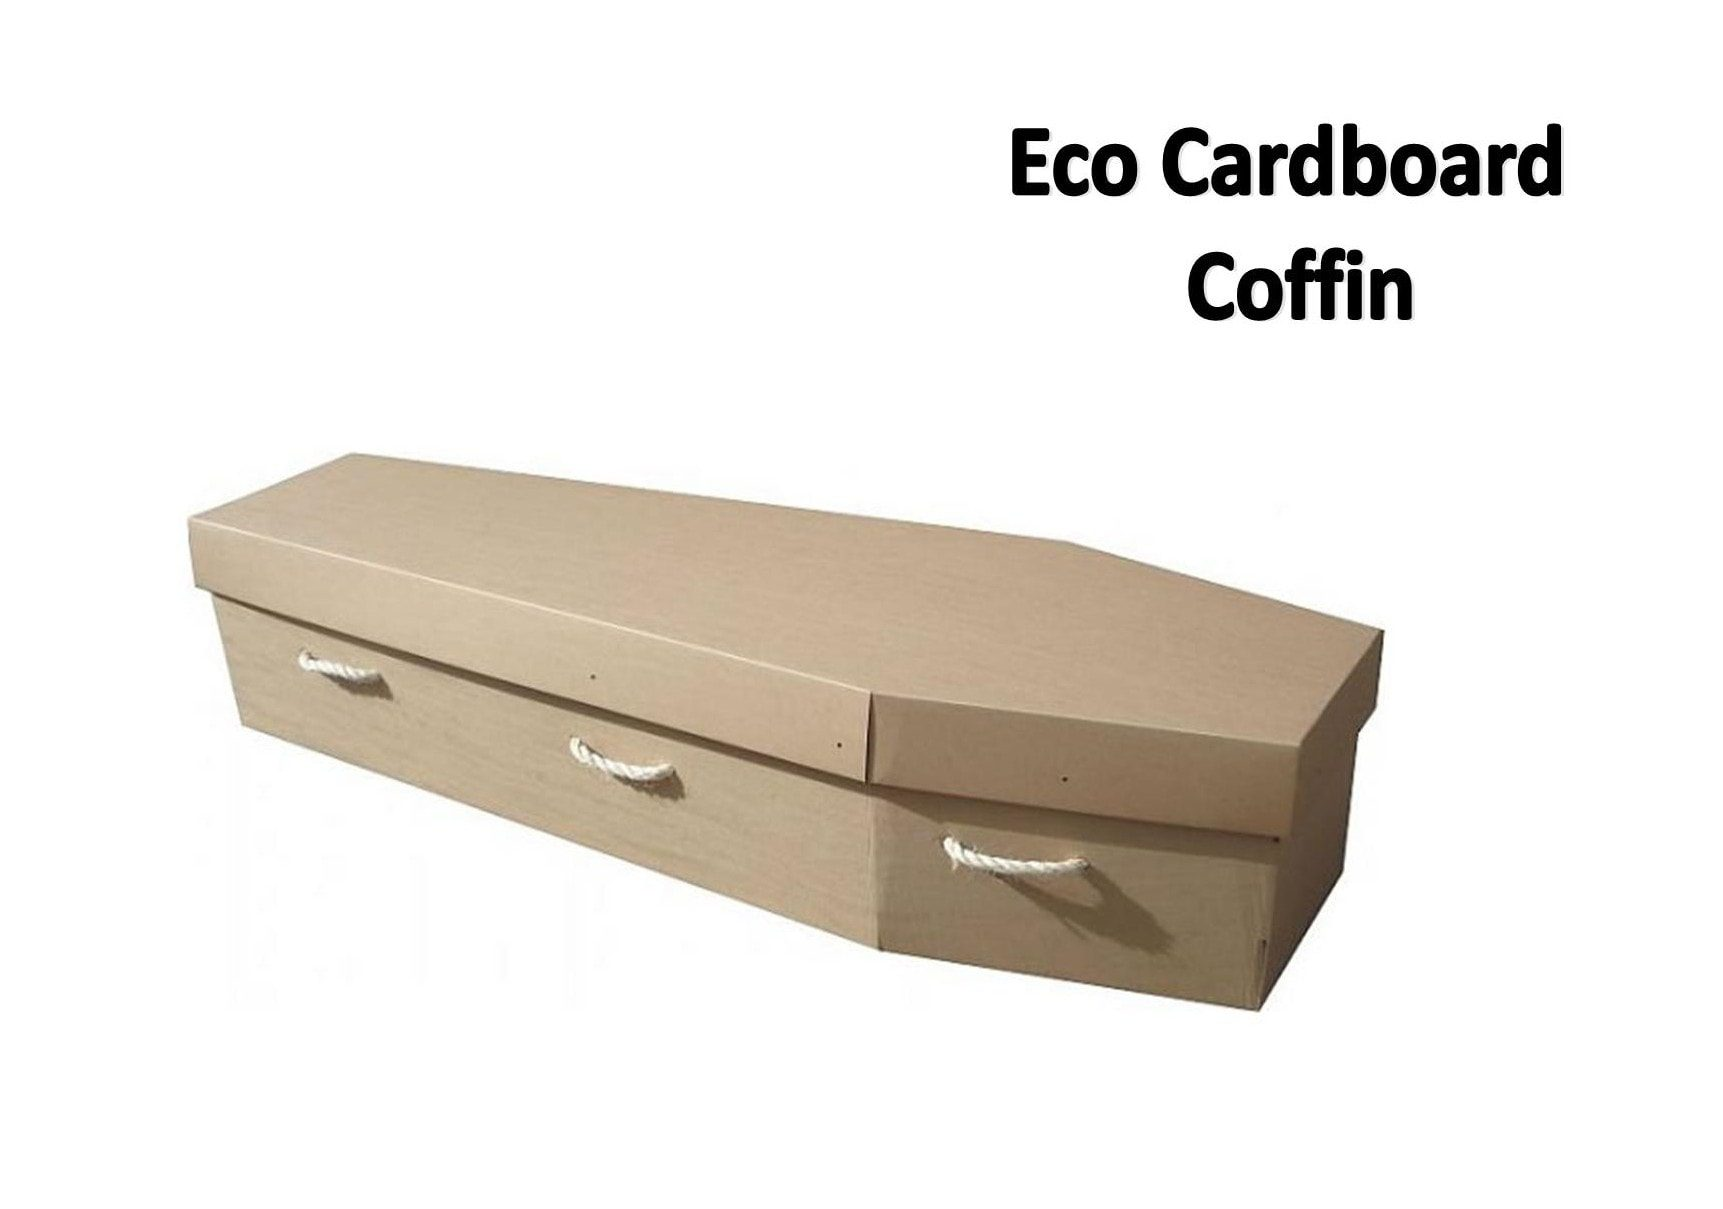 Cardboard And Other Types Of Coffins Herongate Wood